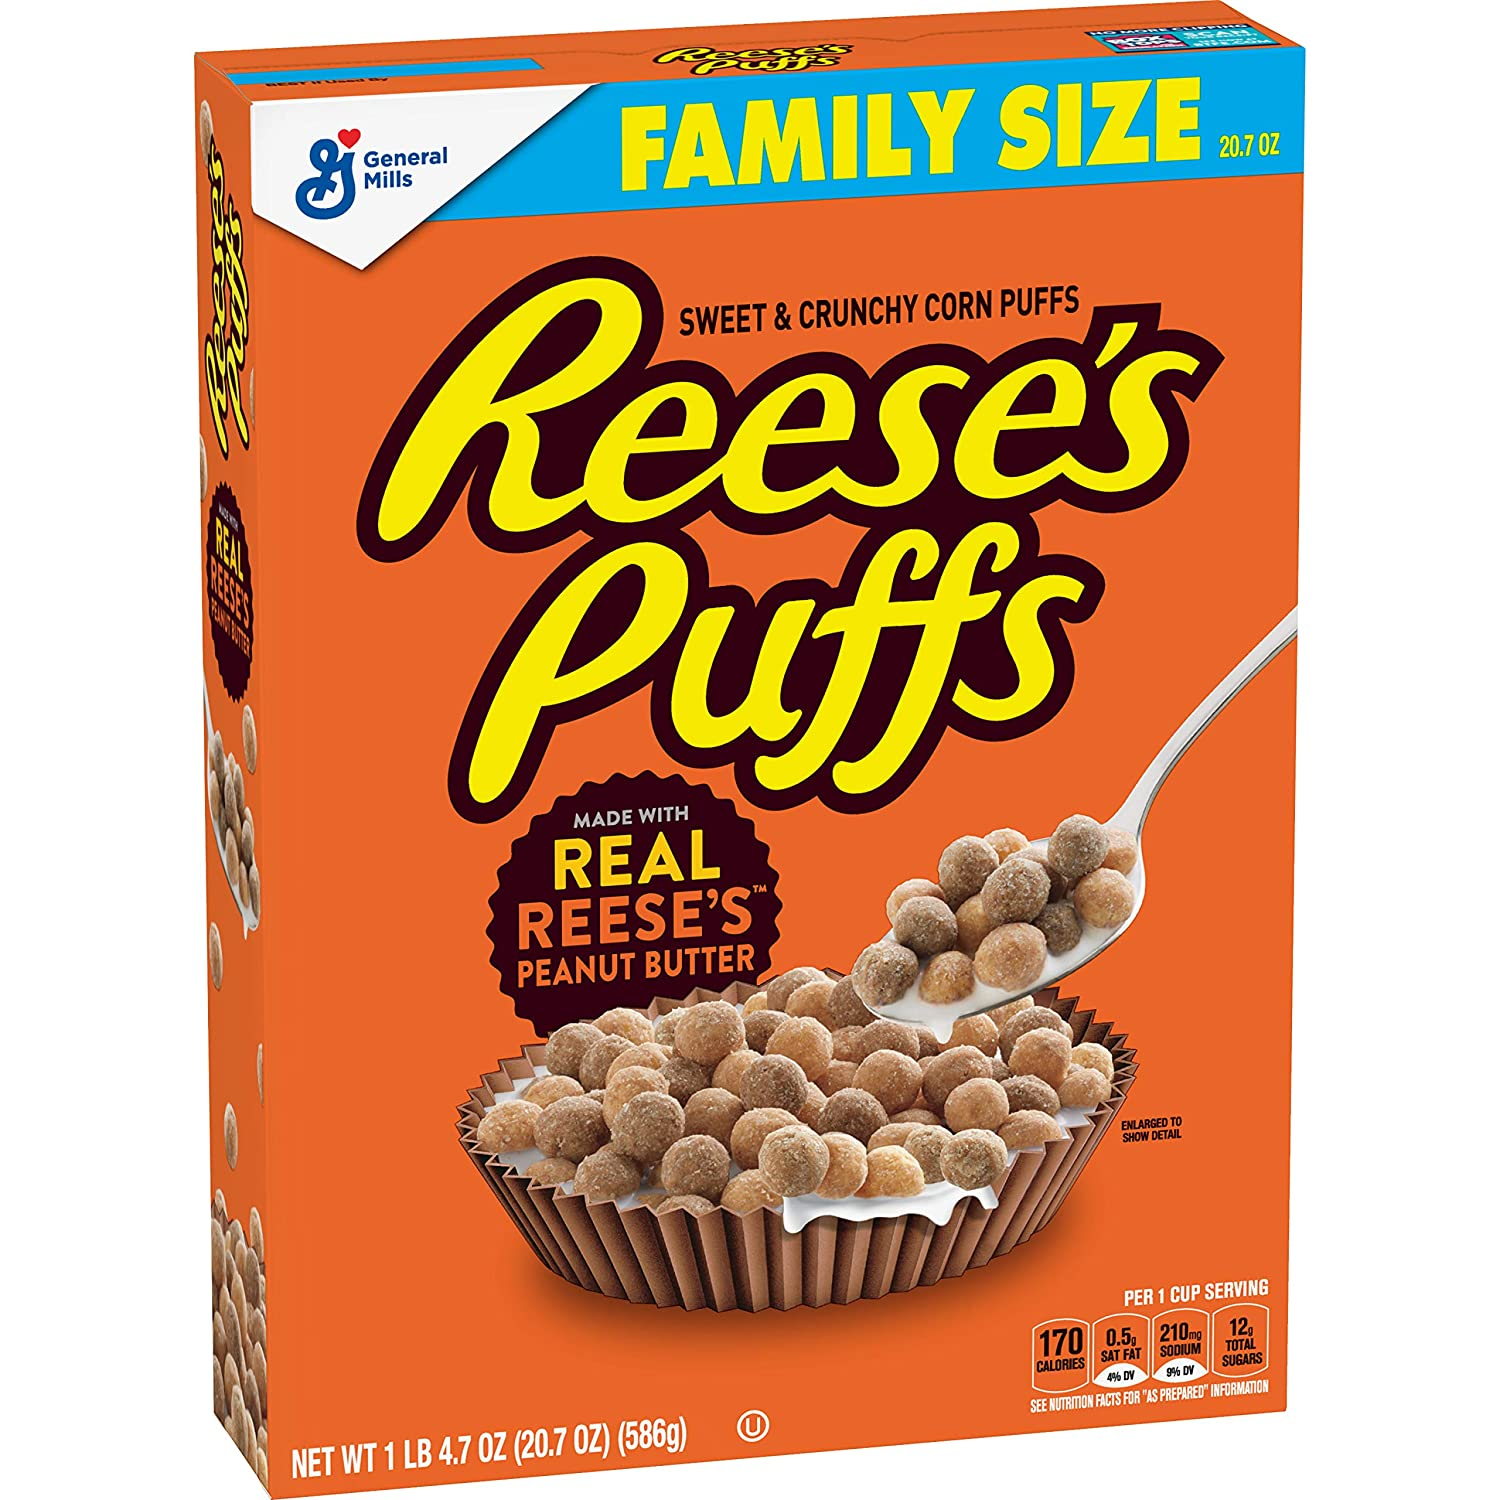 Reese's Puffs Cereal, Chocolate Peanut Butter, with Whole Grain, 20.7 oz